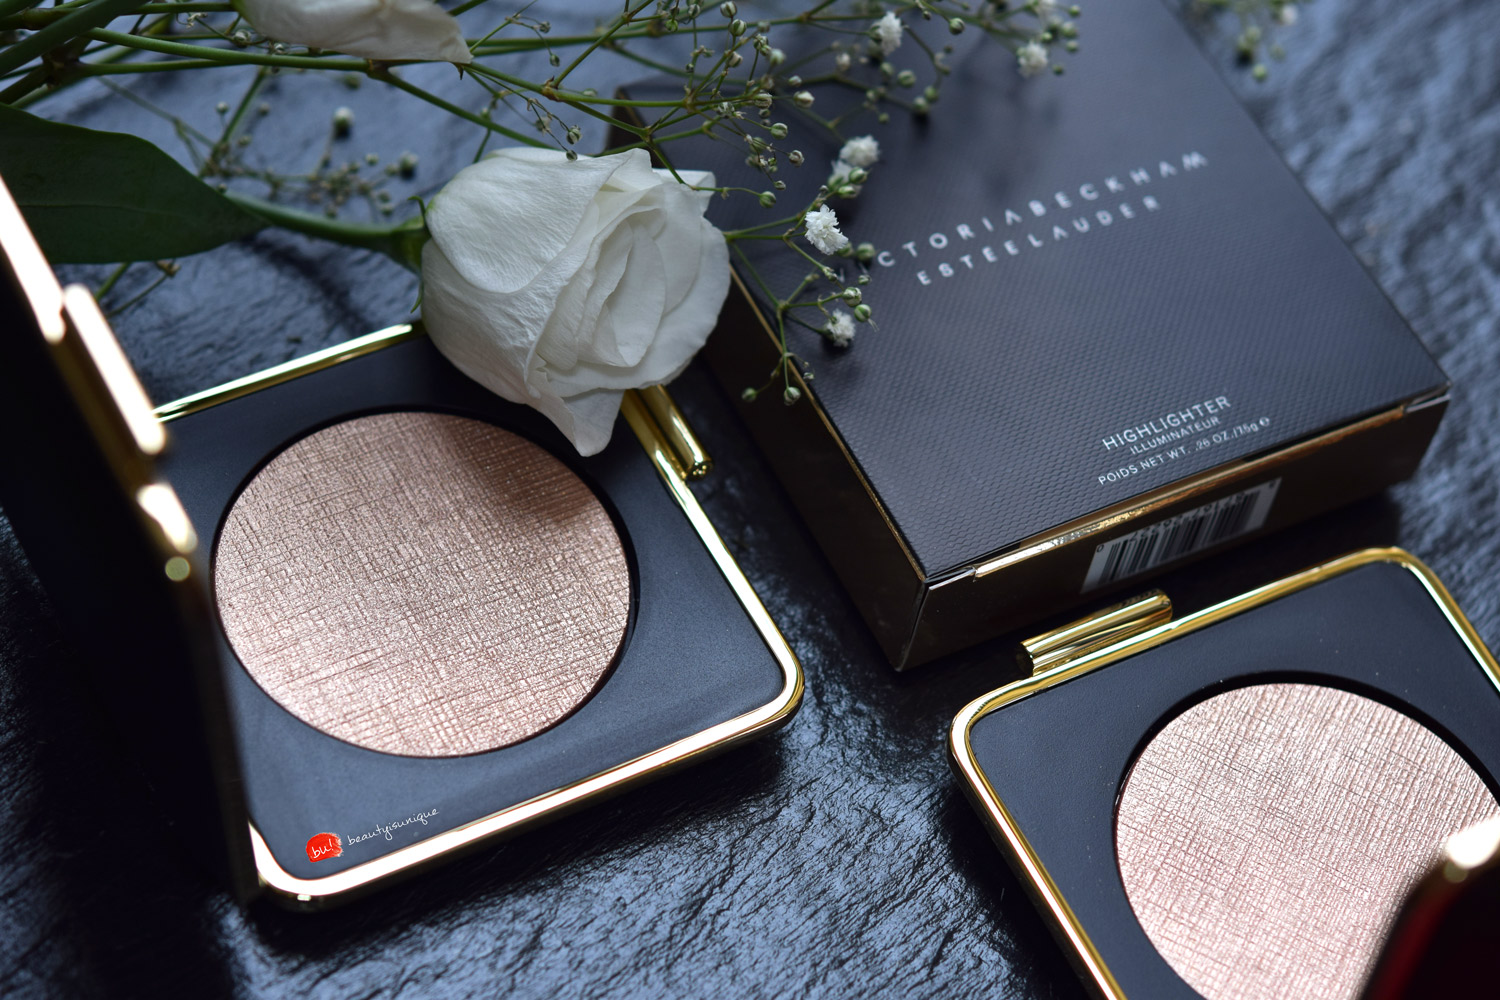 Victoria-backham-estee-lauder-highlighter